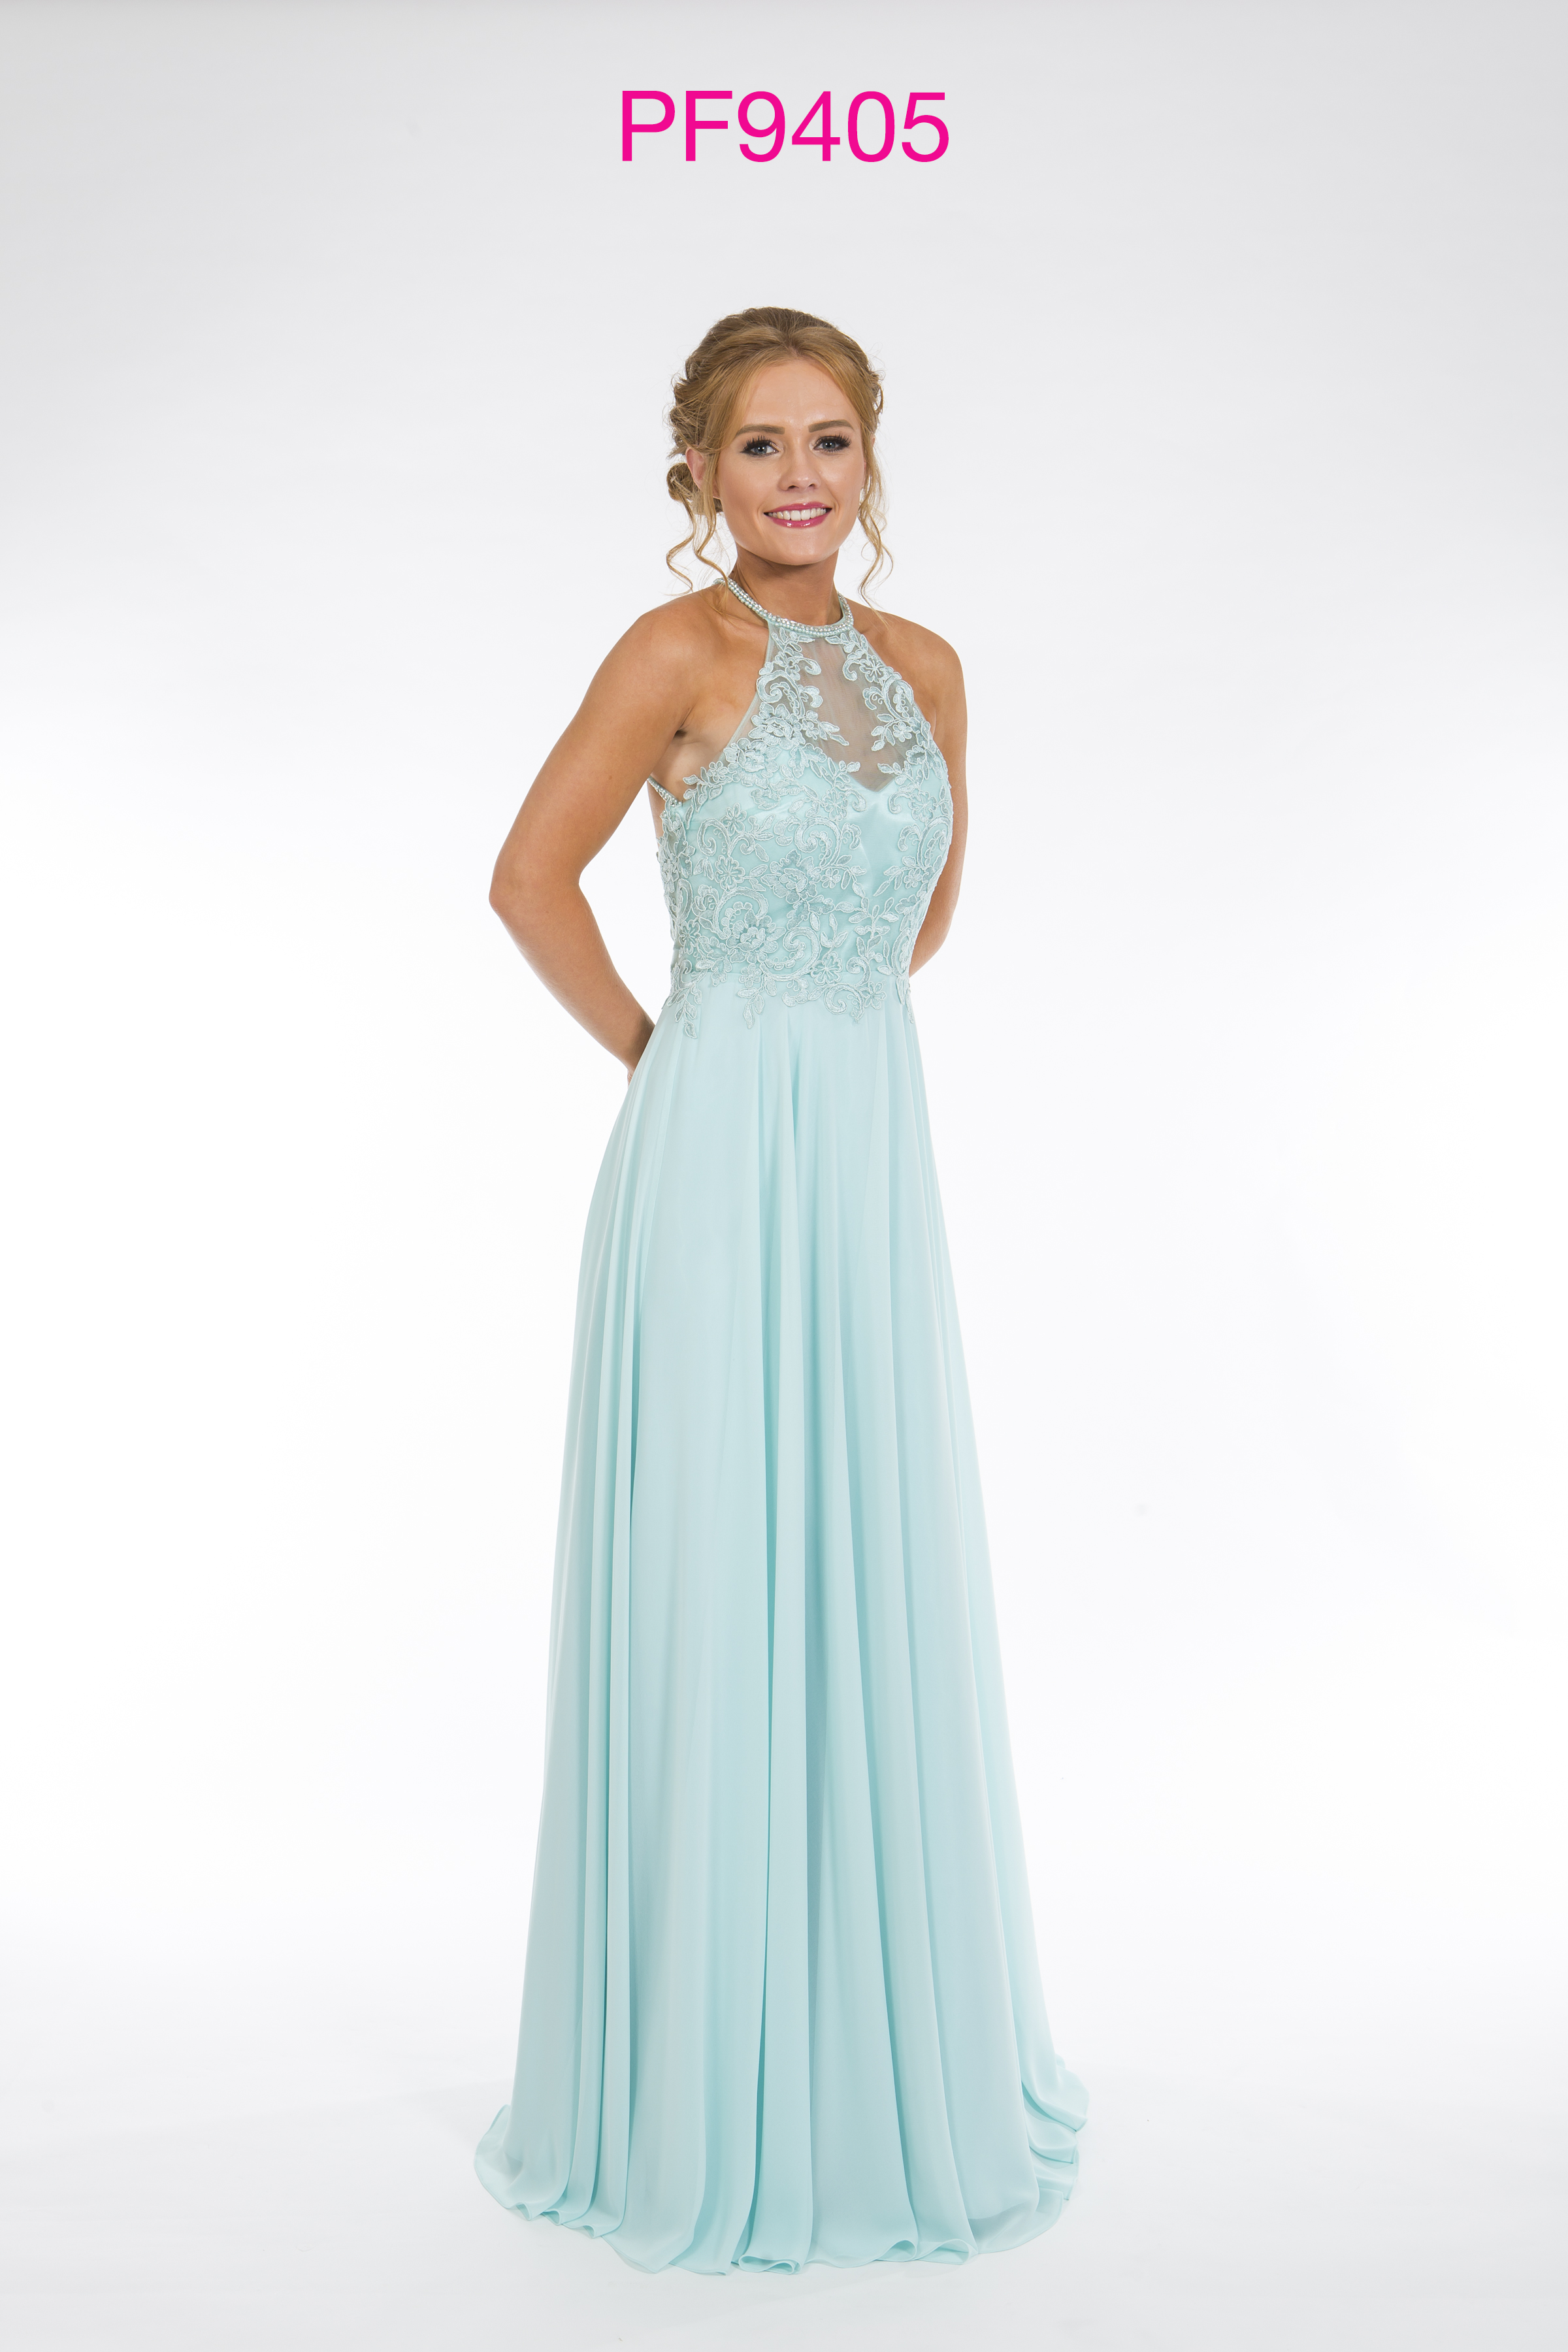 Prom Frocks PF9405 Aqua Prom Dress - Prom Frocks UK Prom Dresses